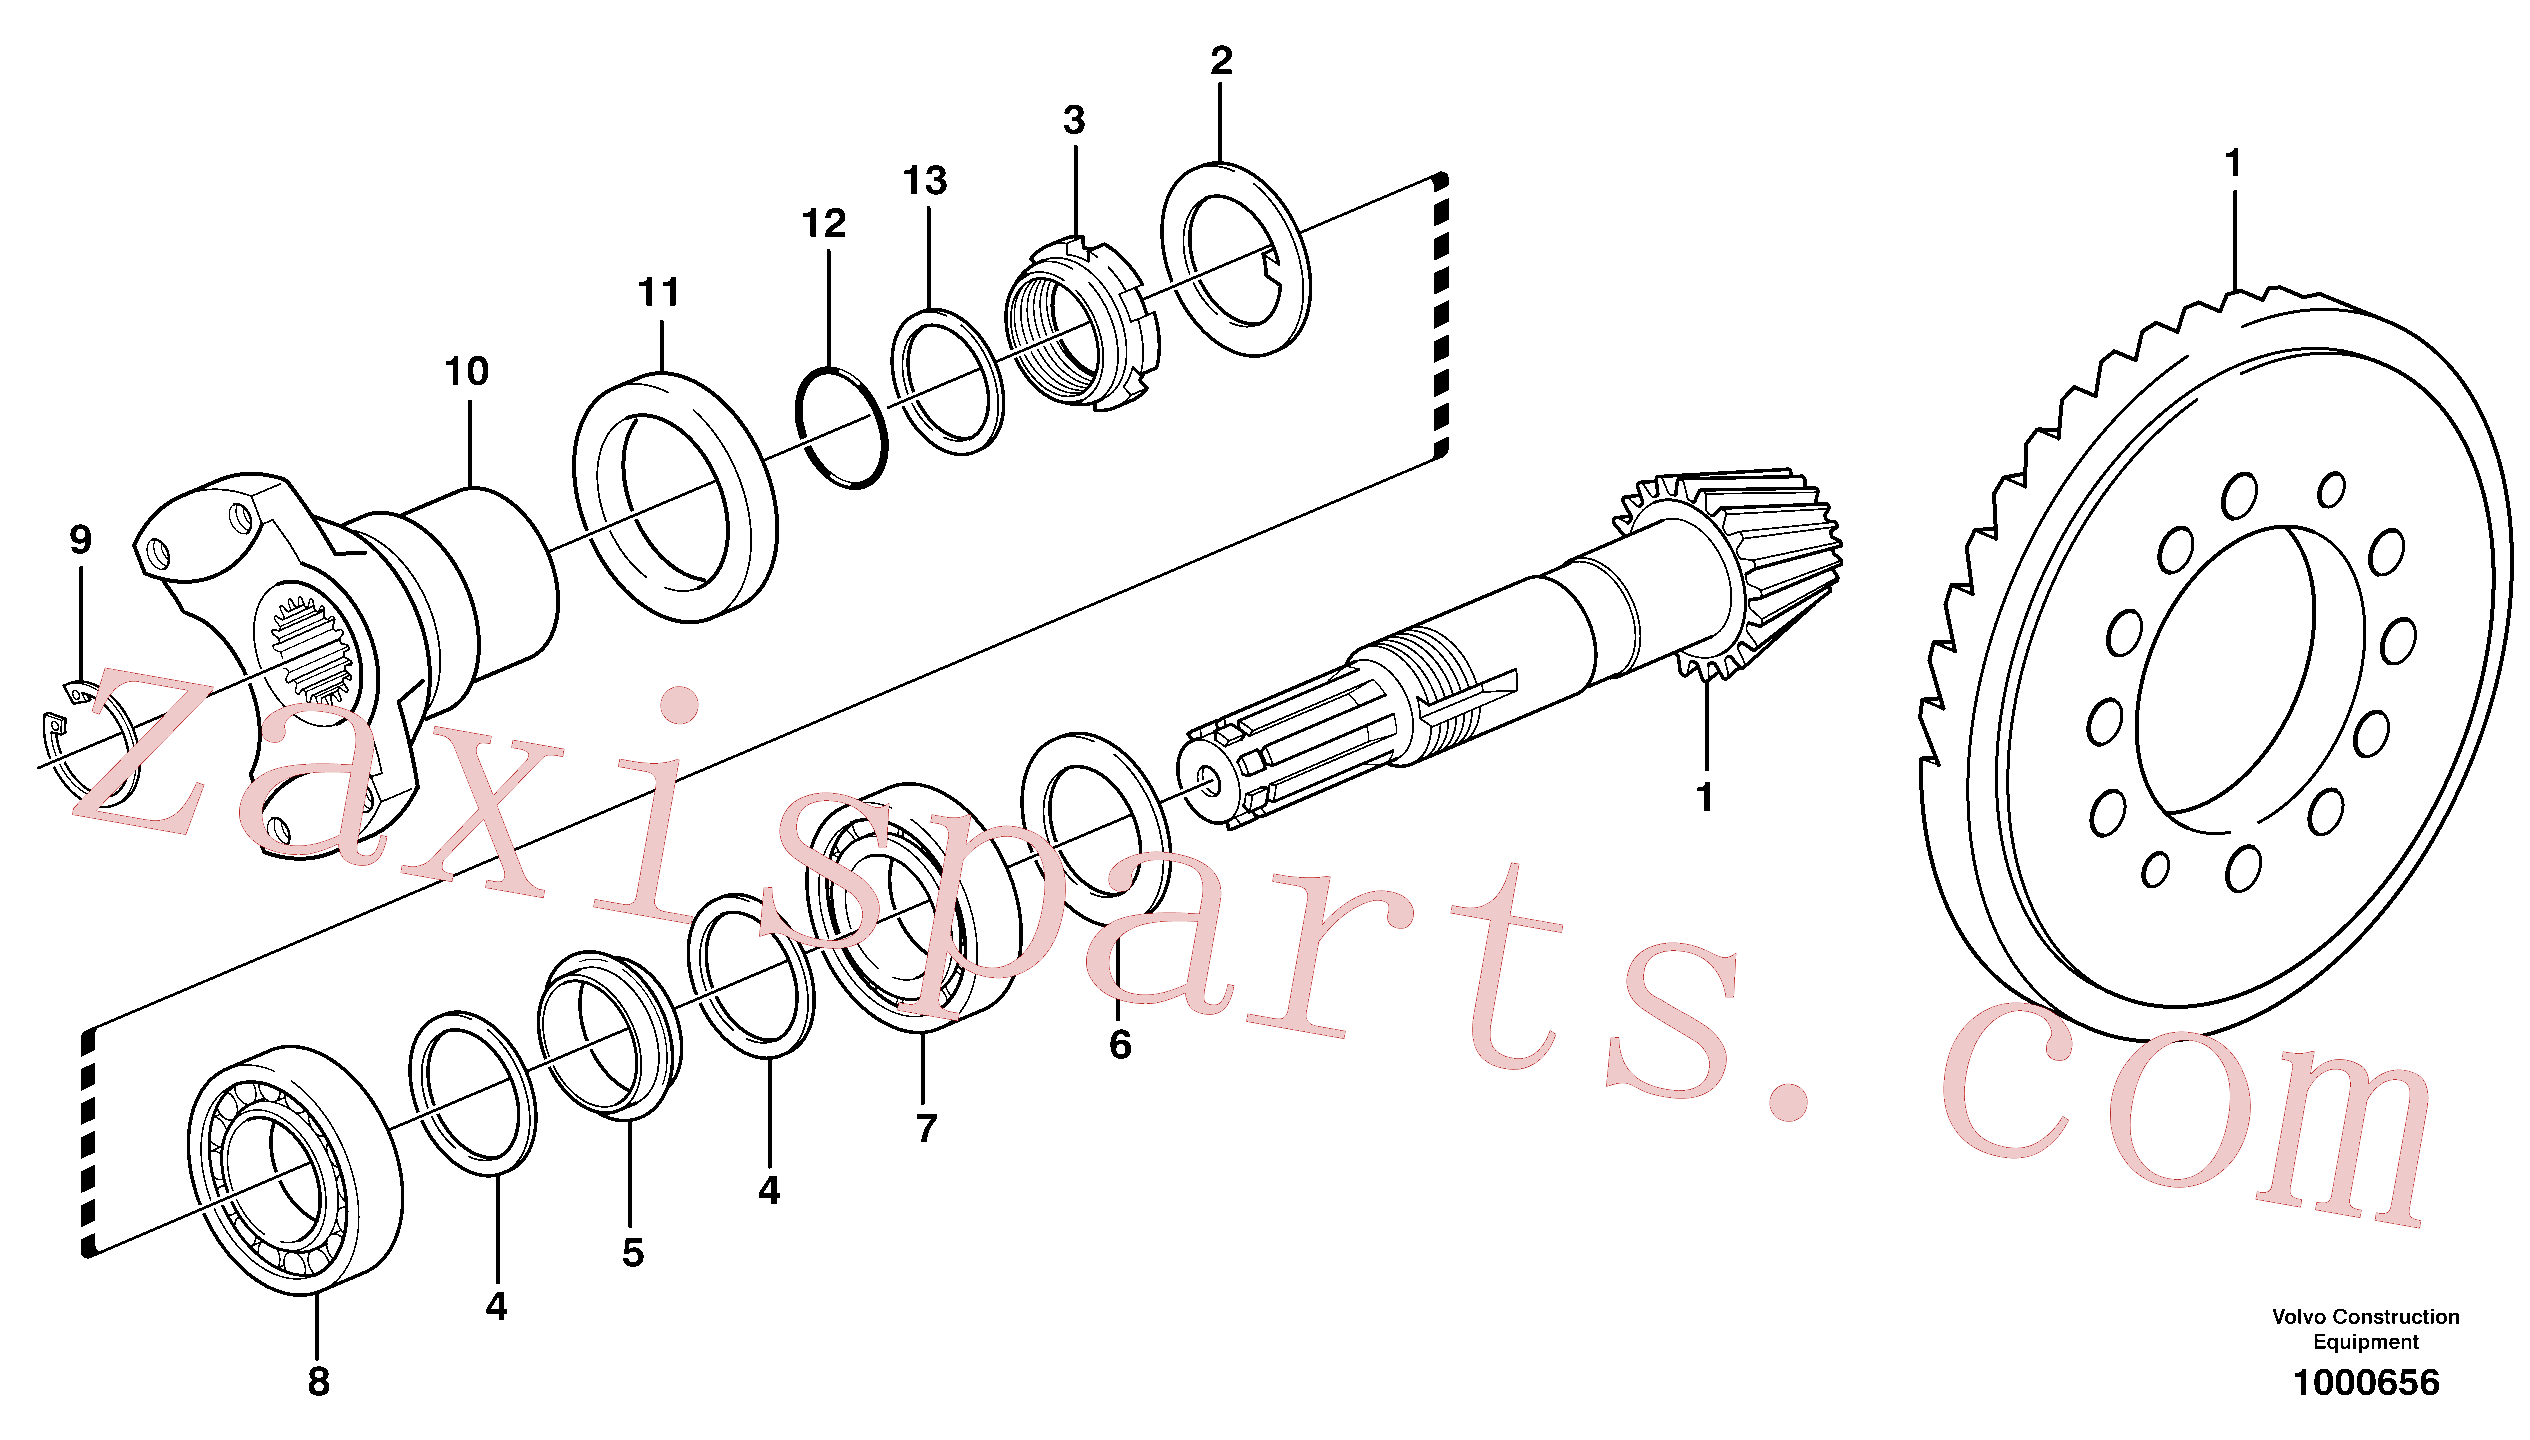 VOE11709294 for Volvo Pinion(1000656 assembly)